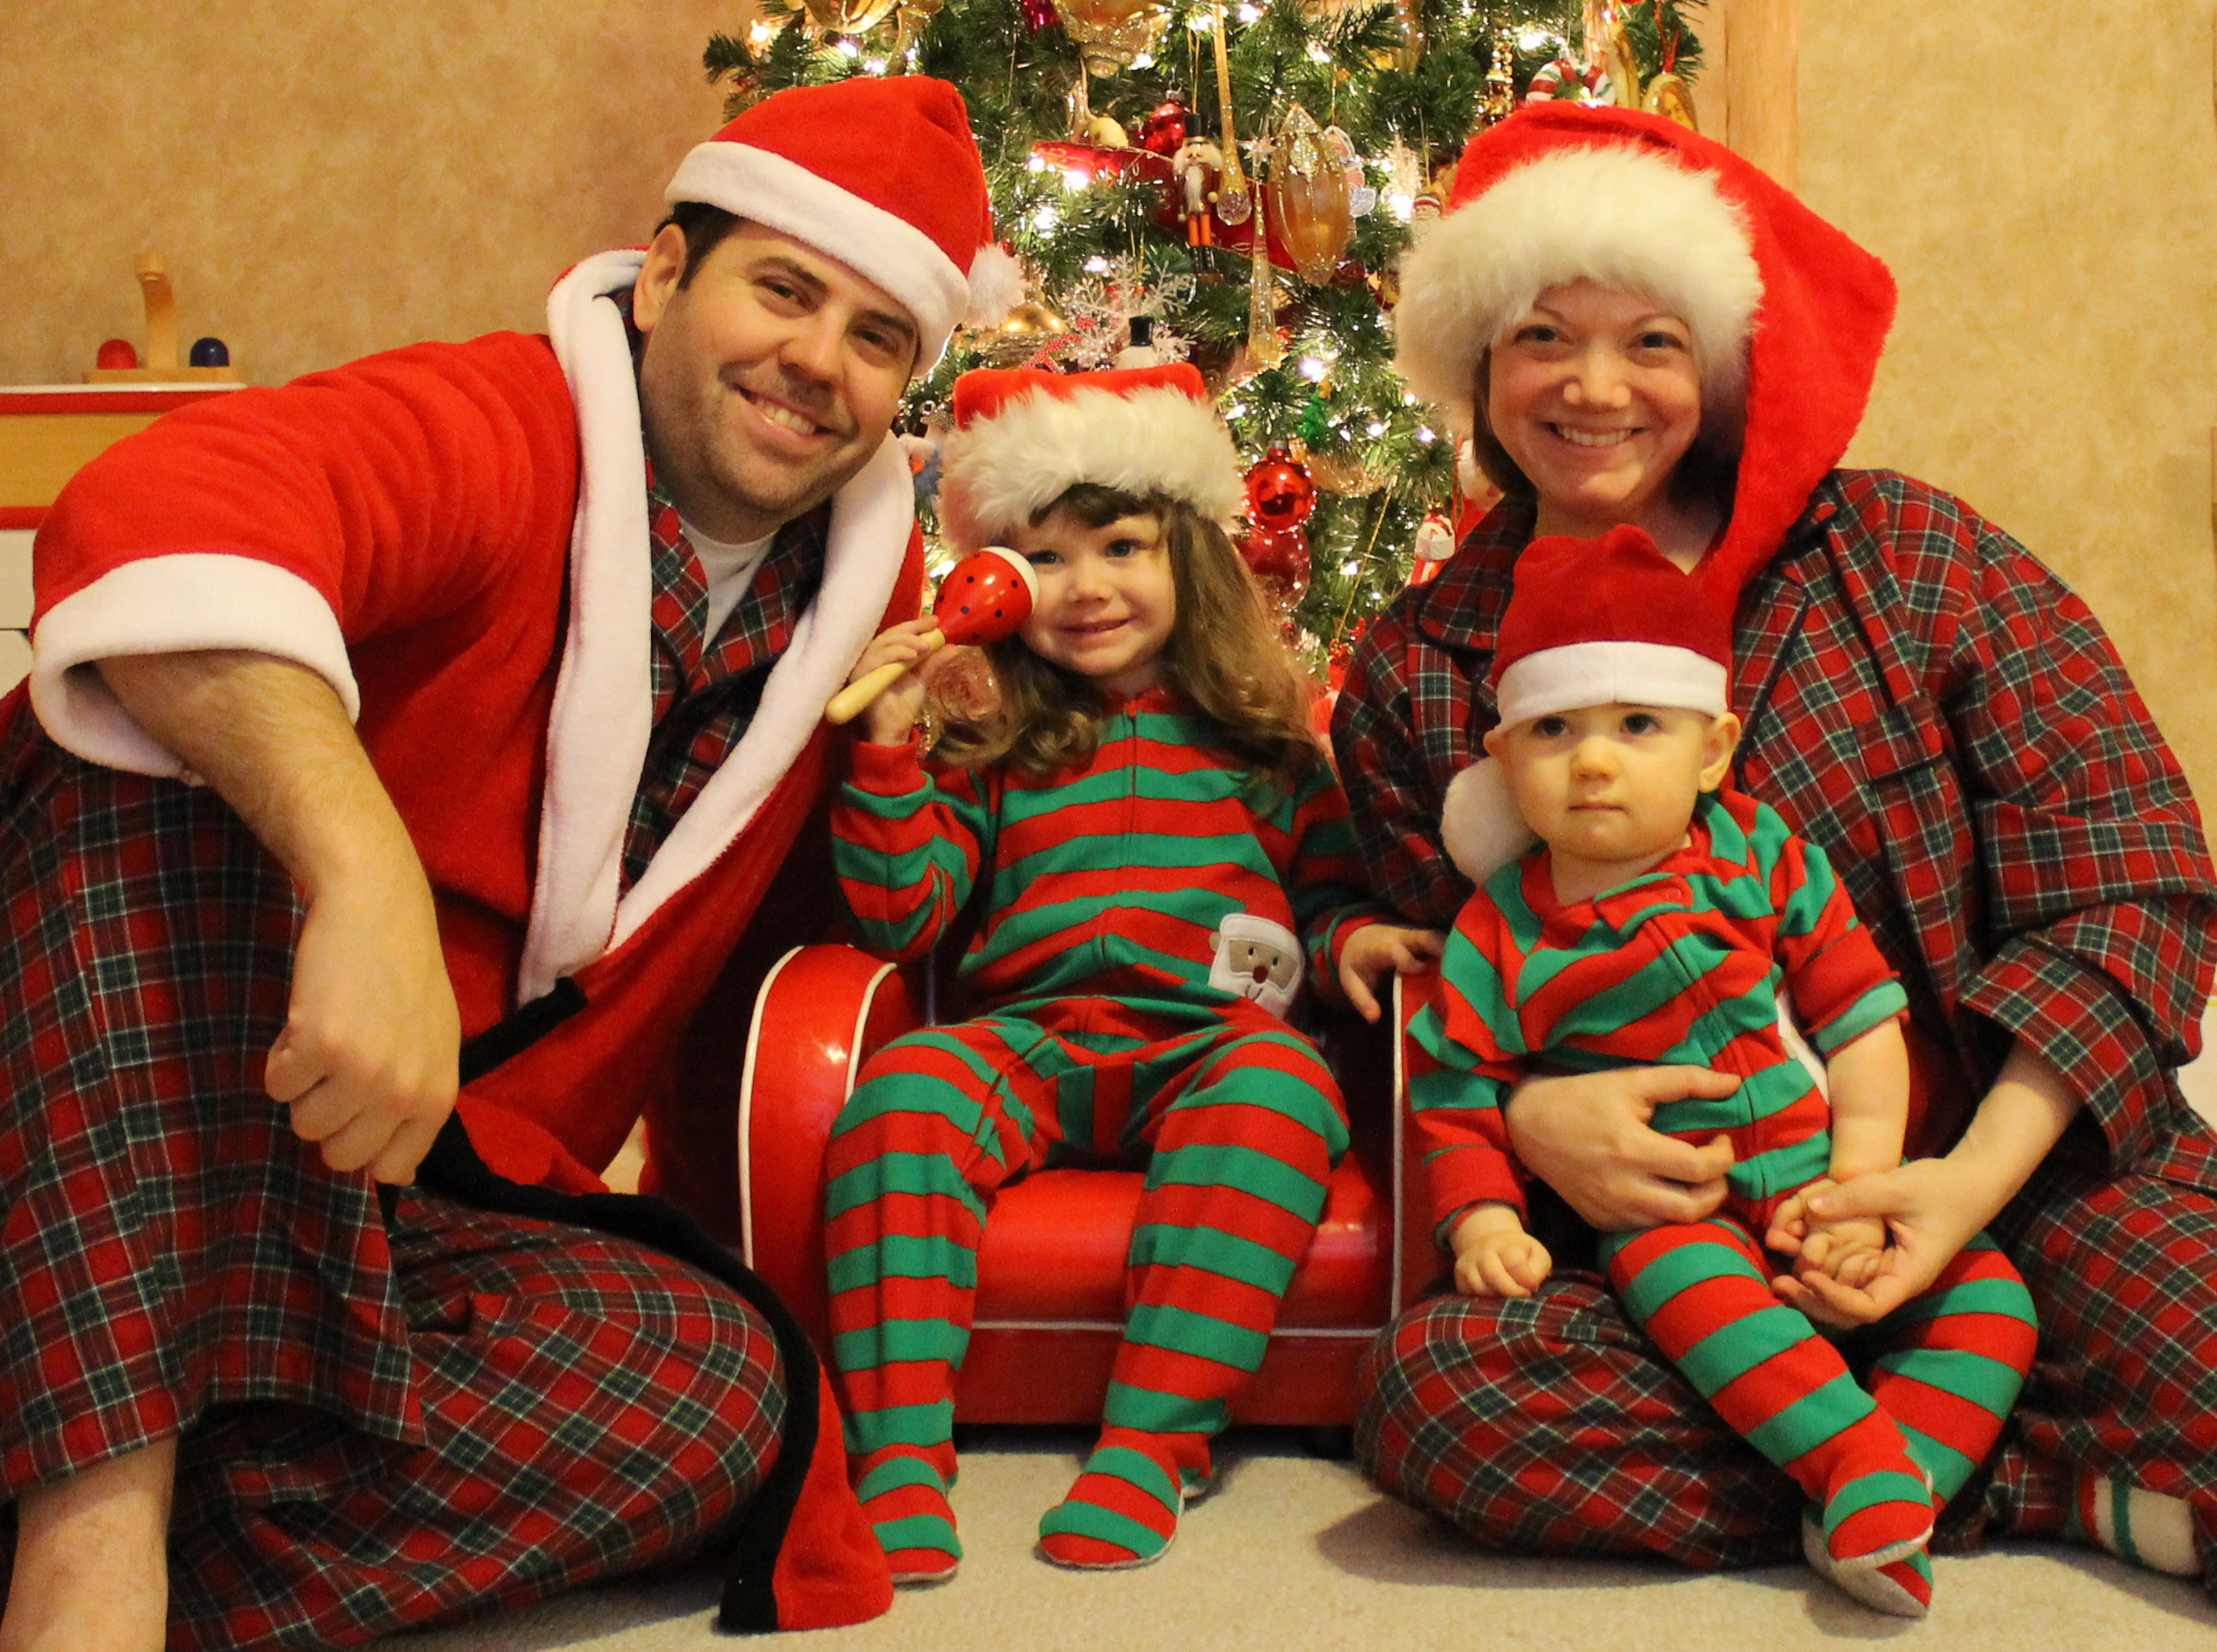 "Meh-rry Christmas ""My sister and I thought it might be a good idea to have our kids' photos taken as a Christmas present for my mom. With two hungry, tired newborn babies and a bored 3 year old, it was quite possibly the worst day of our lives. This was the best pic we could get of all three of them."" (submitted by Colleen)."